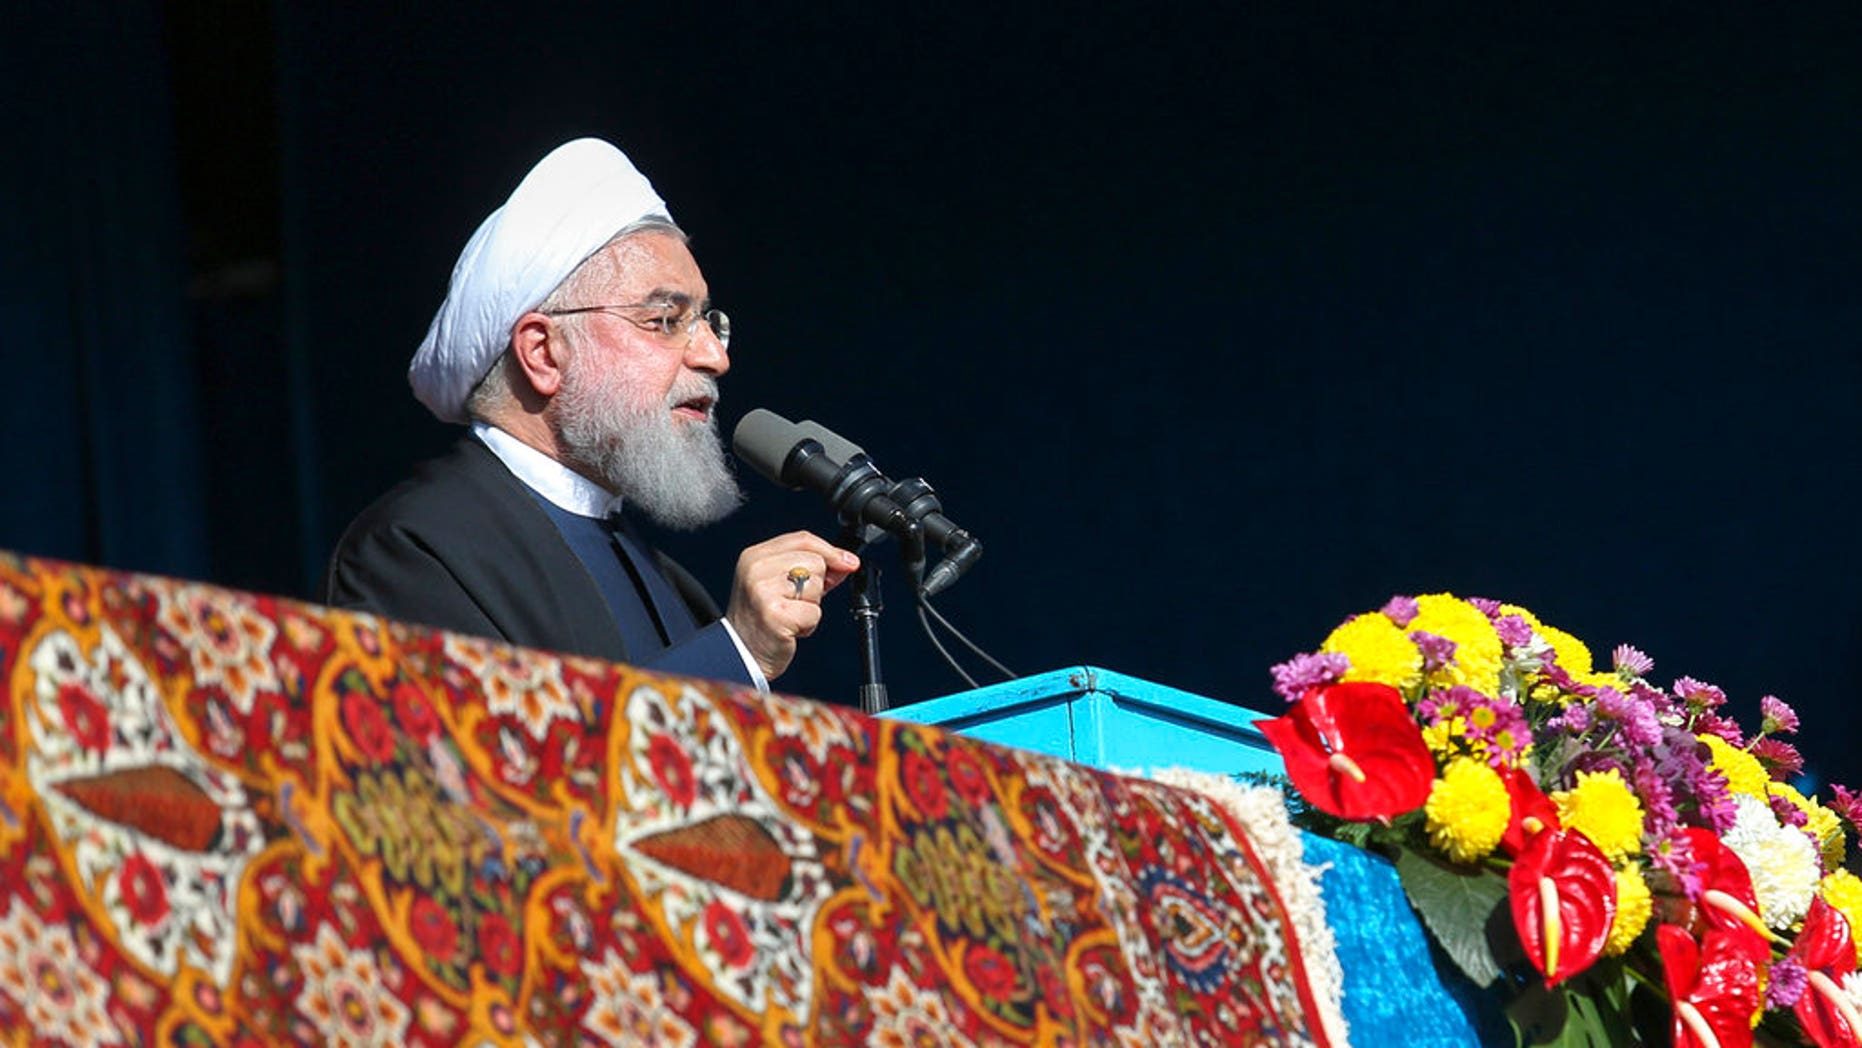 In this photo released by official website of the office of the Iranian Presidency, President Hassan Rouhani speaks in a public gathering in the northern city of Shahroud, Iran, Tuesday, Dec. 4, 2018. Rouhani threatened again to close the Strait of Hormuz, the passageway for nearly a third of all oil traded by sea. (Iranian Presidency Office via AP)